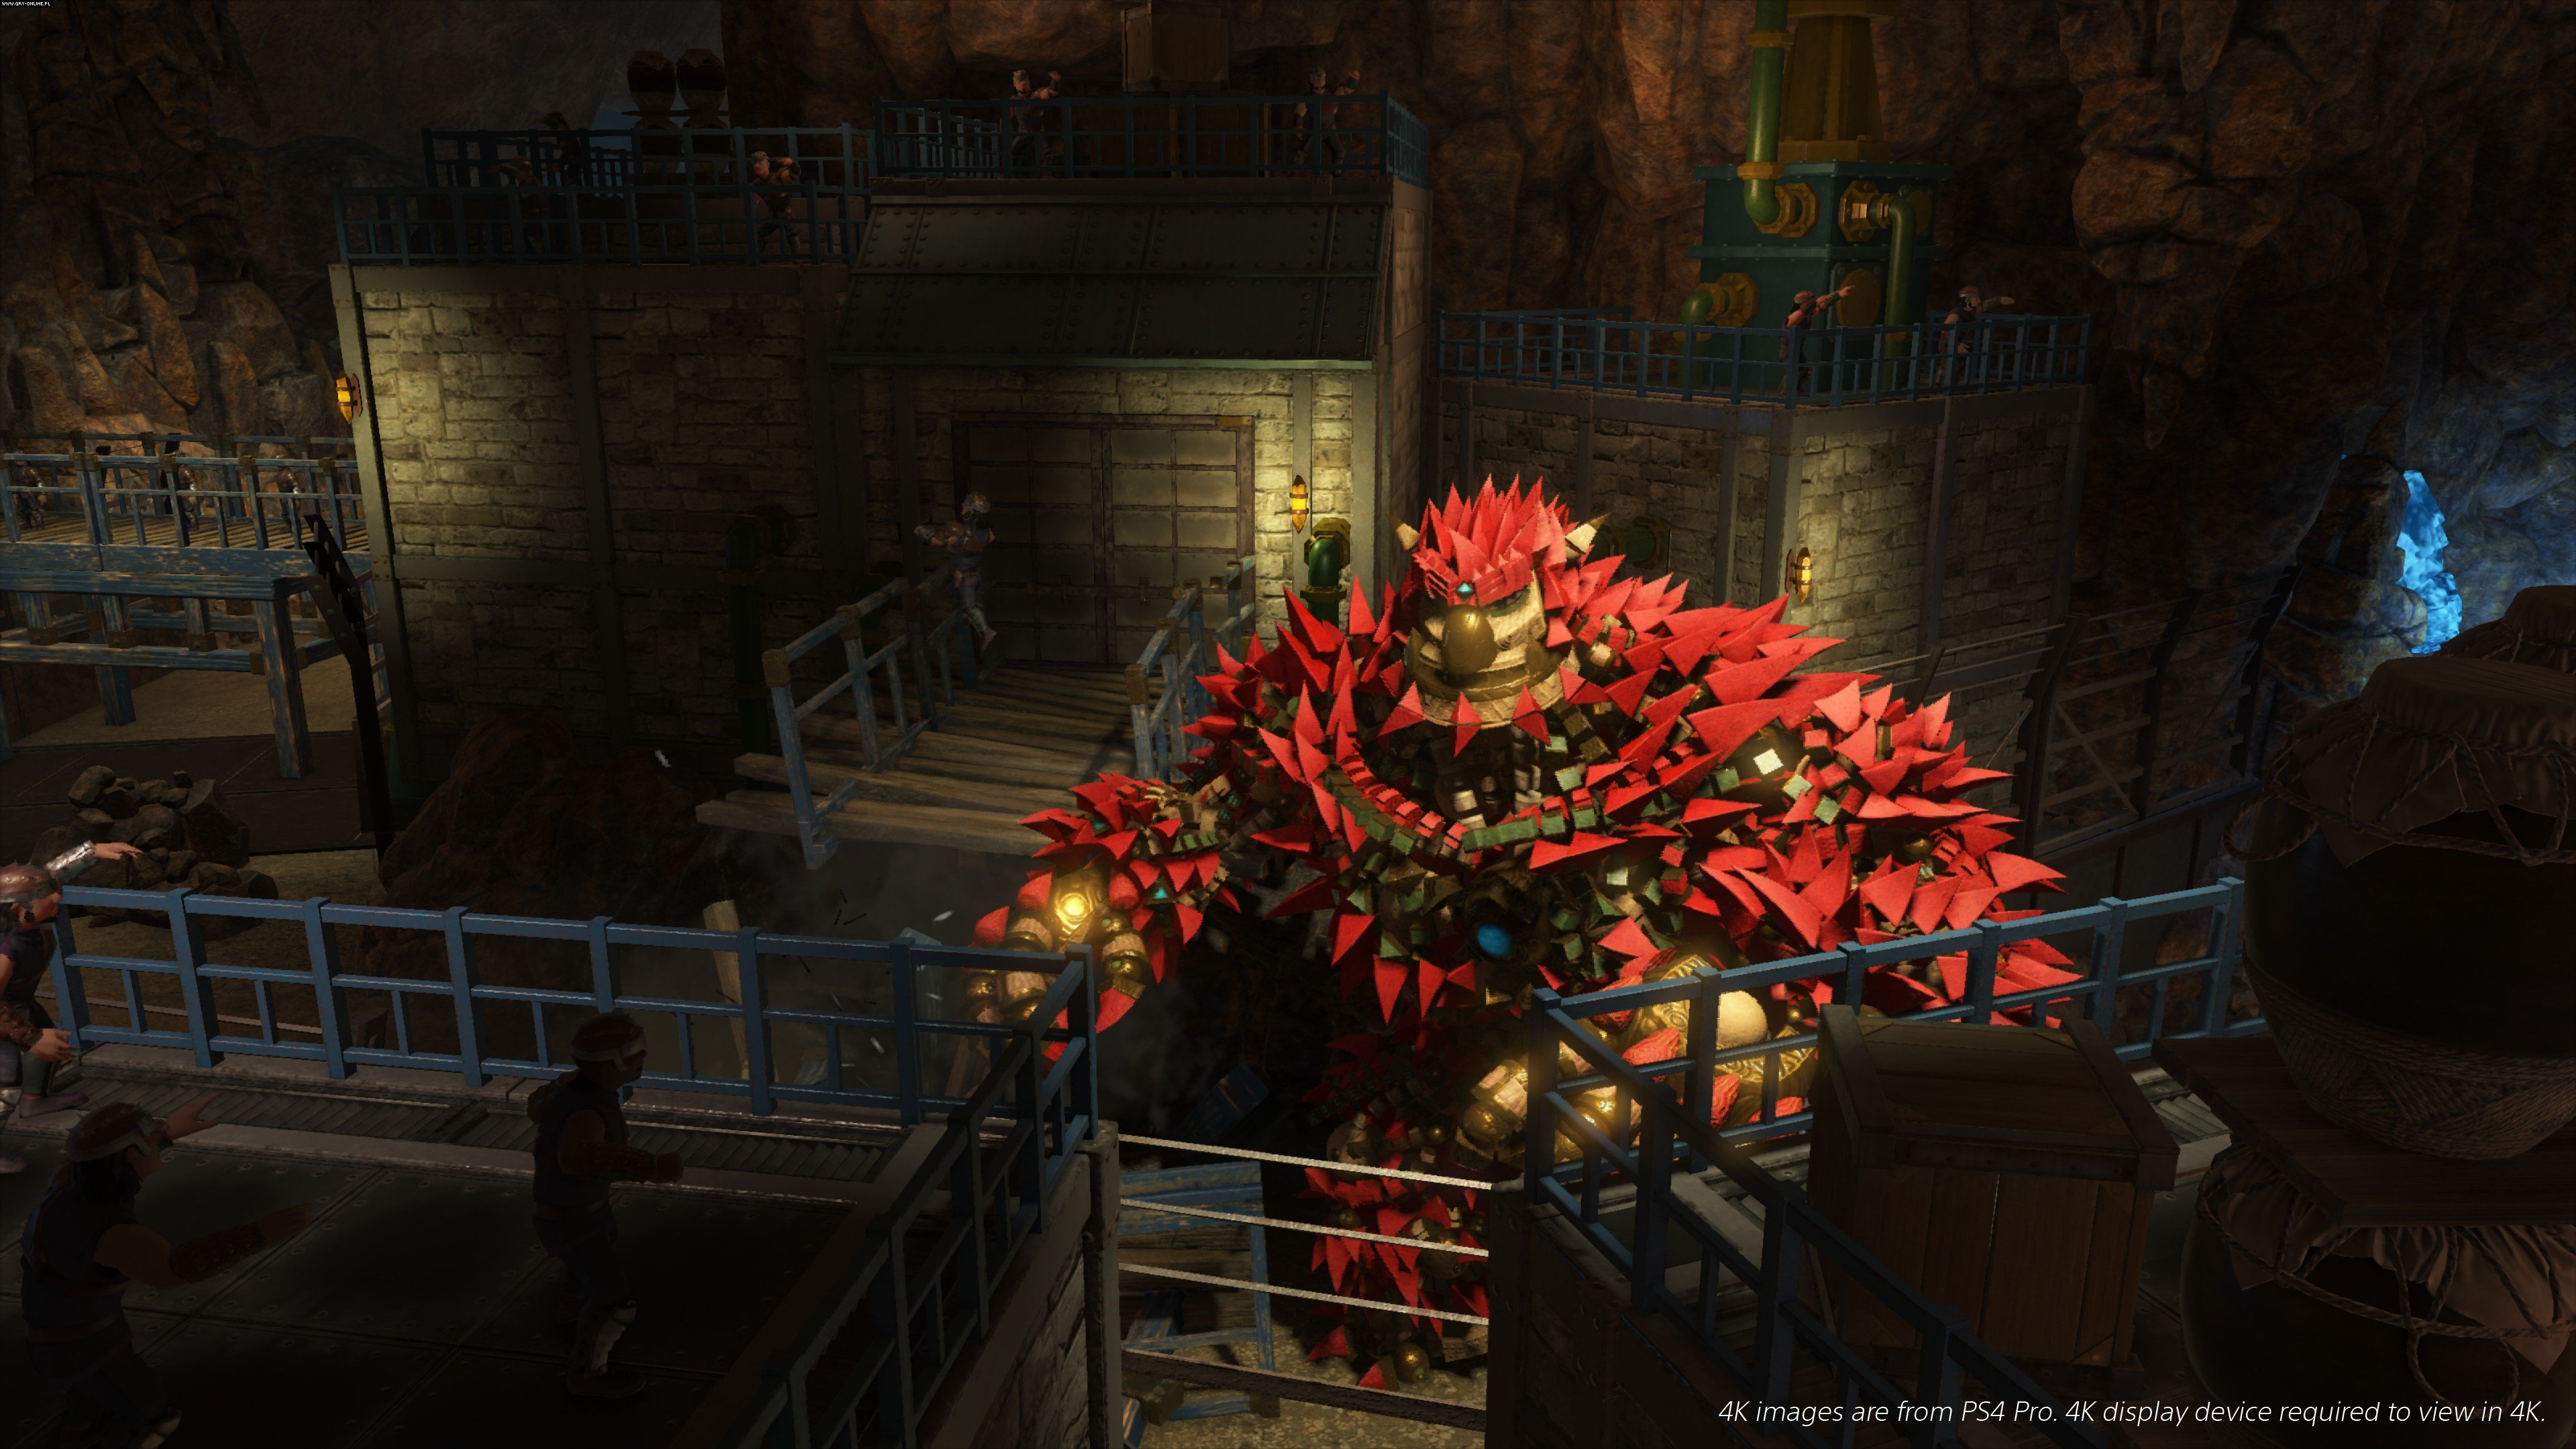 Knack 2 PS4 Games Image 7/7, Sony Interactive Entertainment